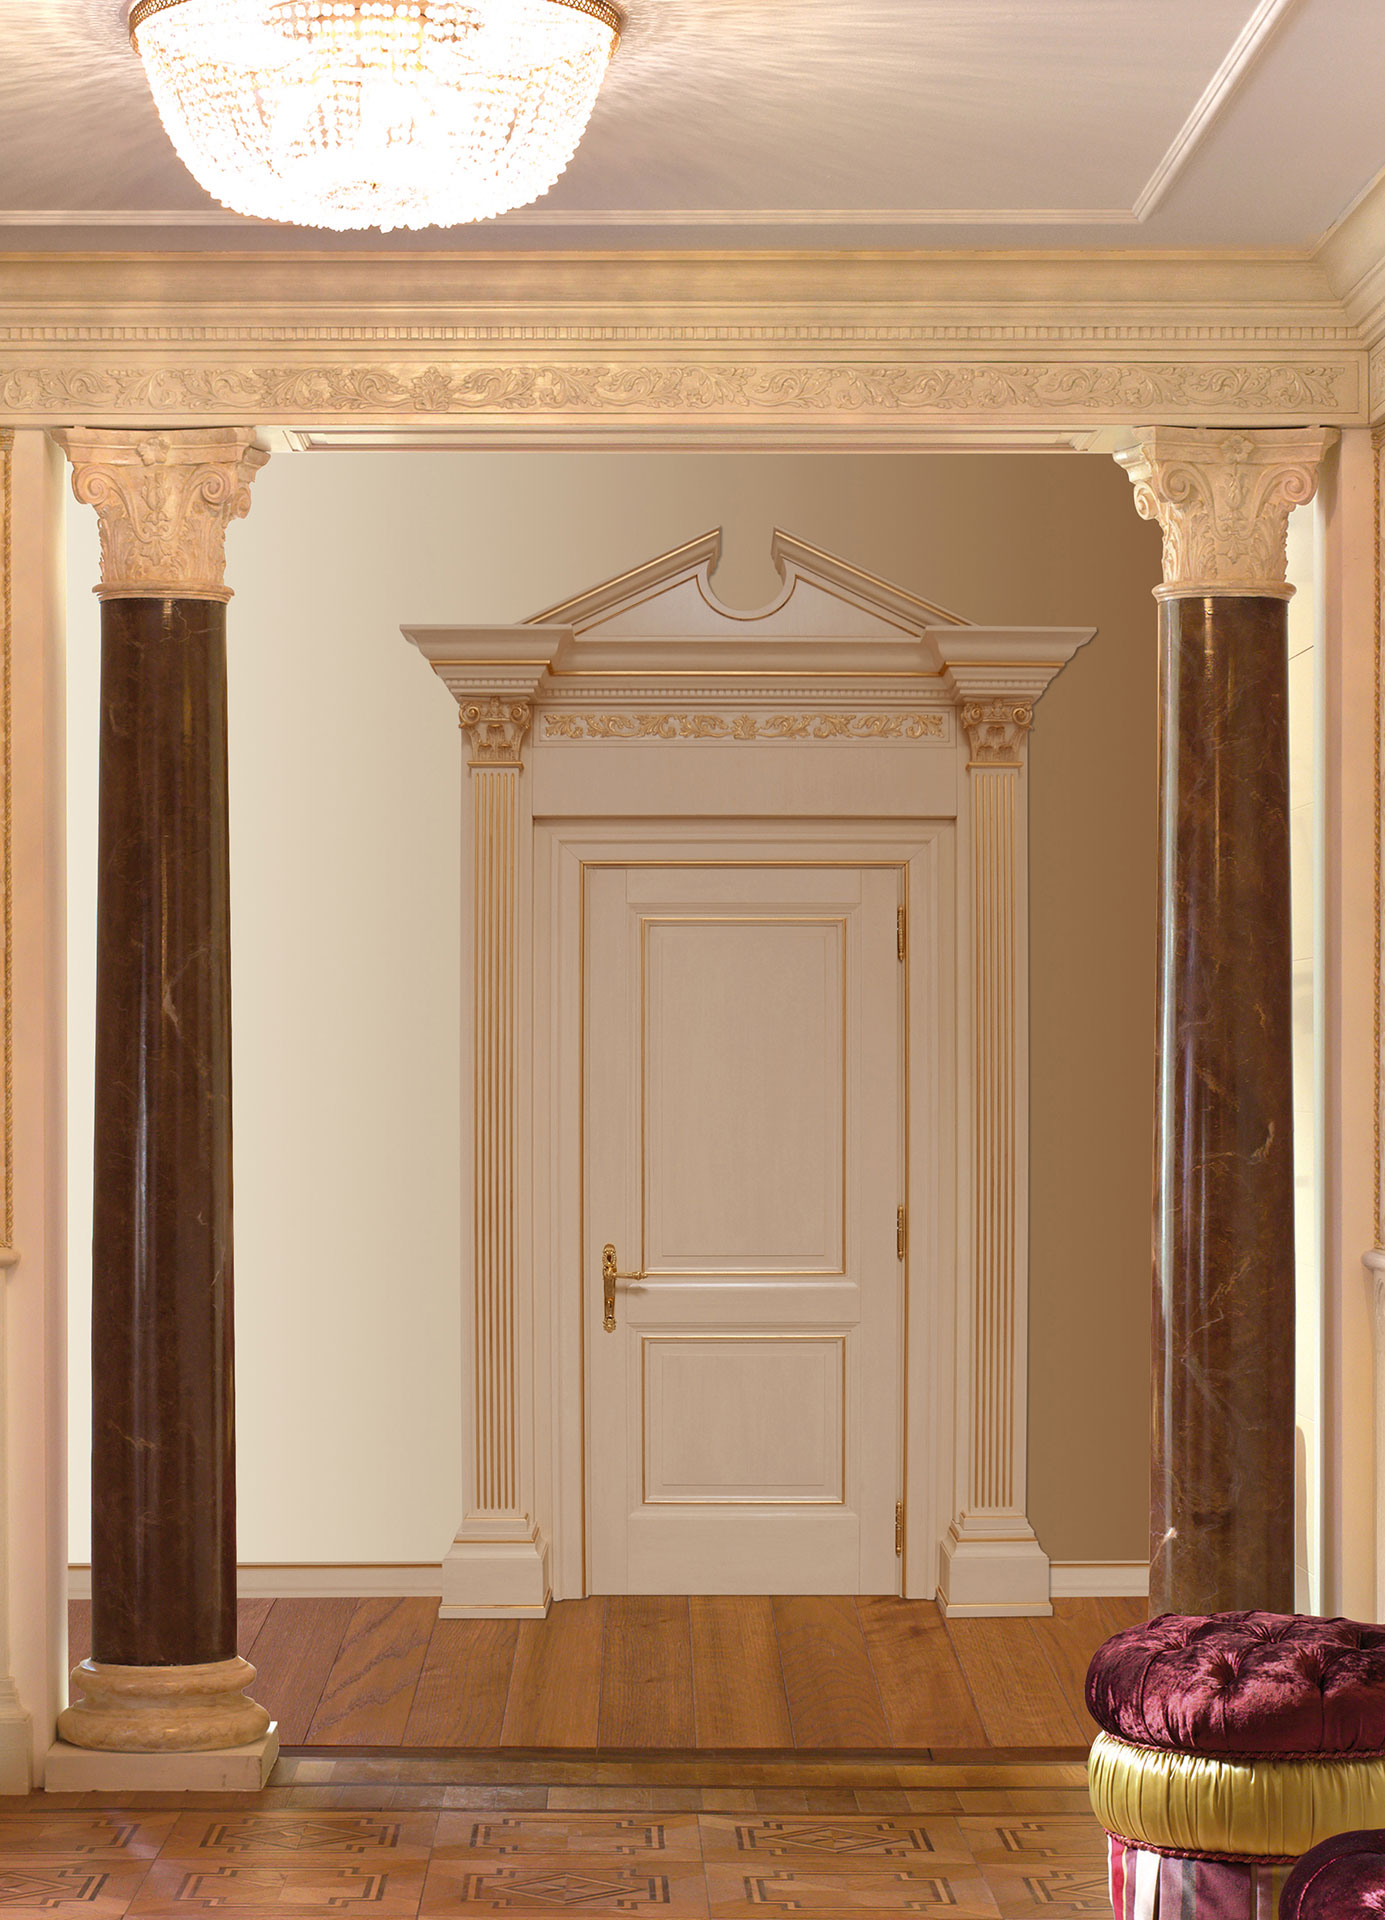 Faoma white wooden front door with capitals and tympanum